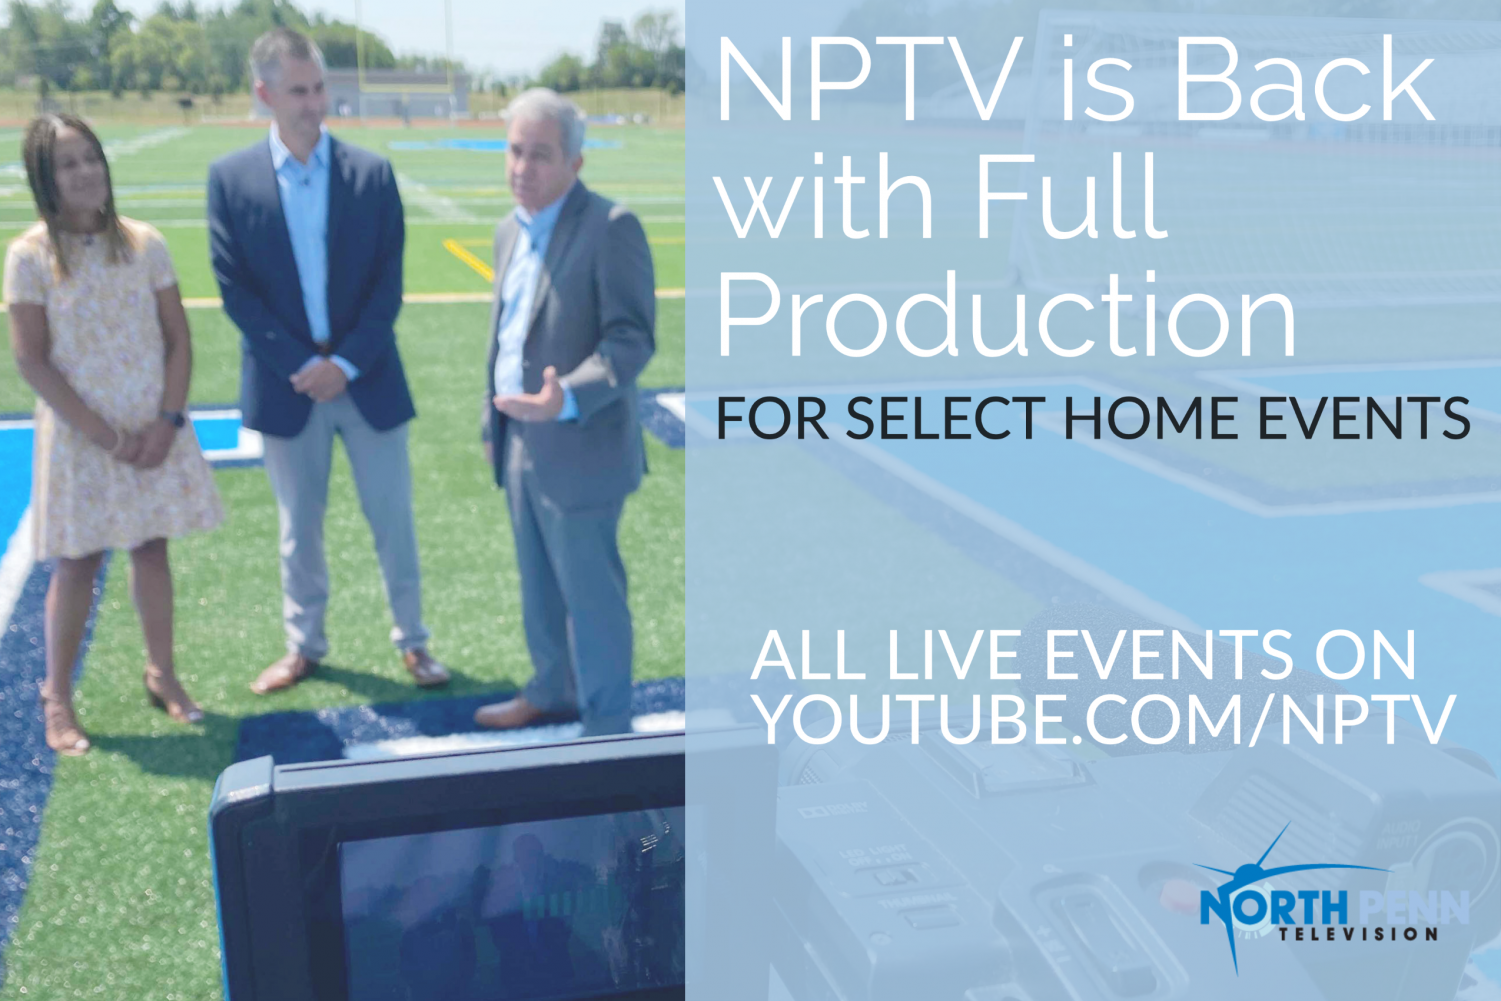 NPTV is Back Graphic